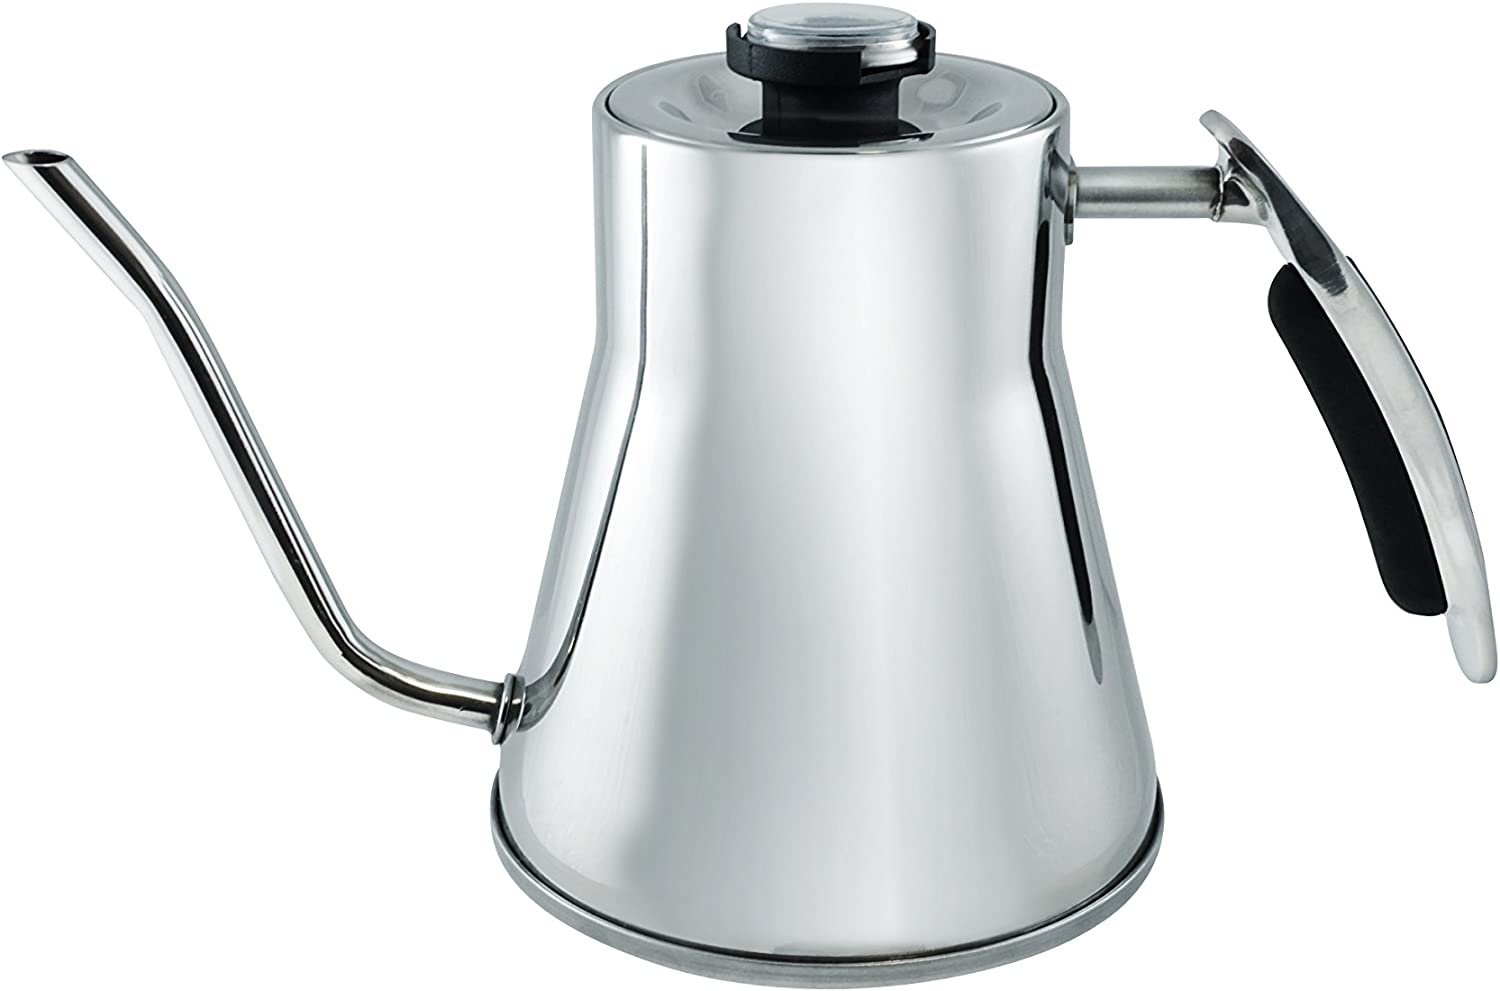 Java Concepts JC-17010 Pour Over Kettle, Stainless Steel Pour Over Kettle, Stainless Steel,